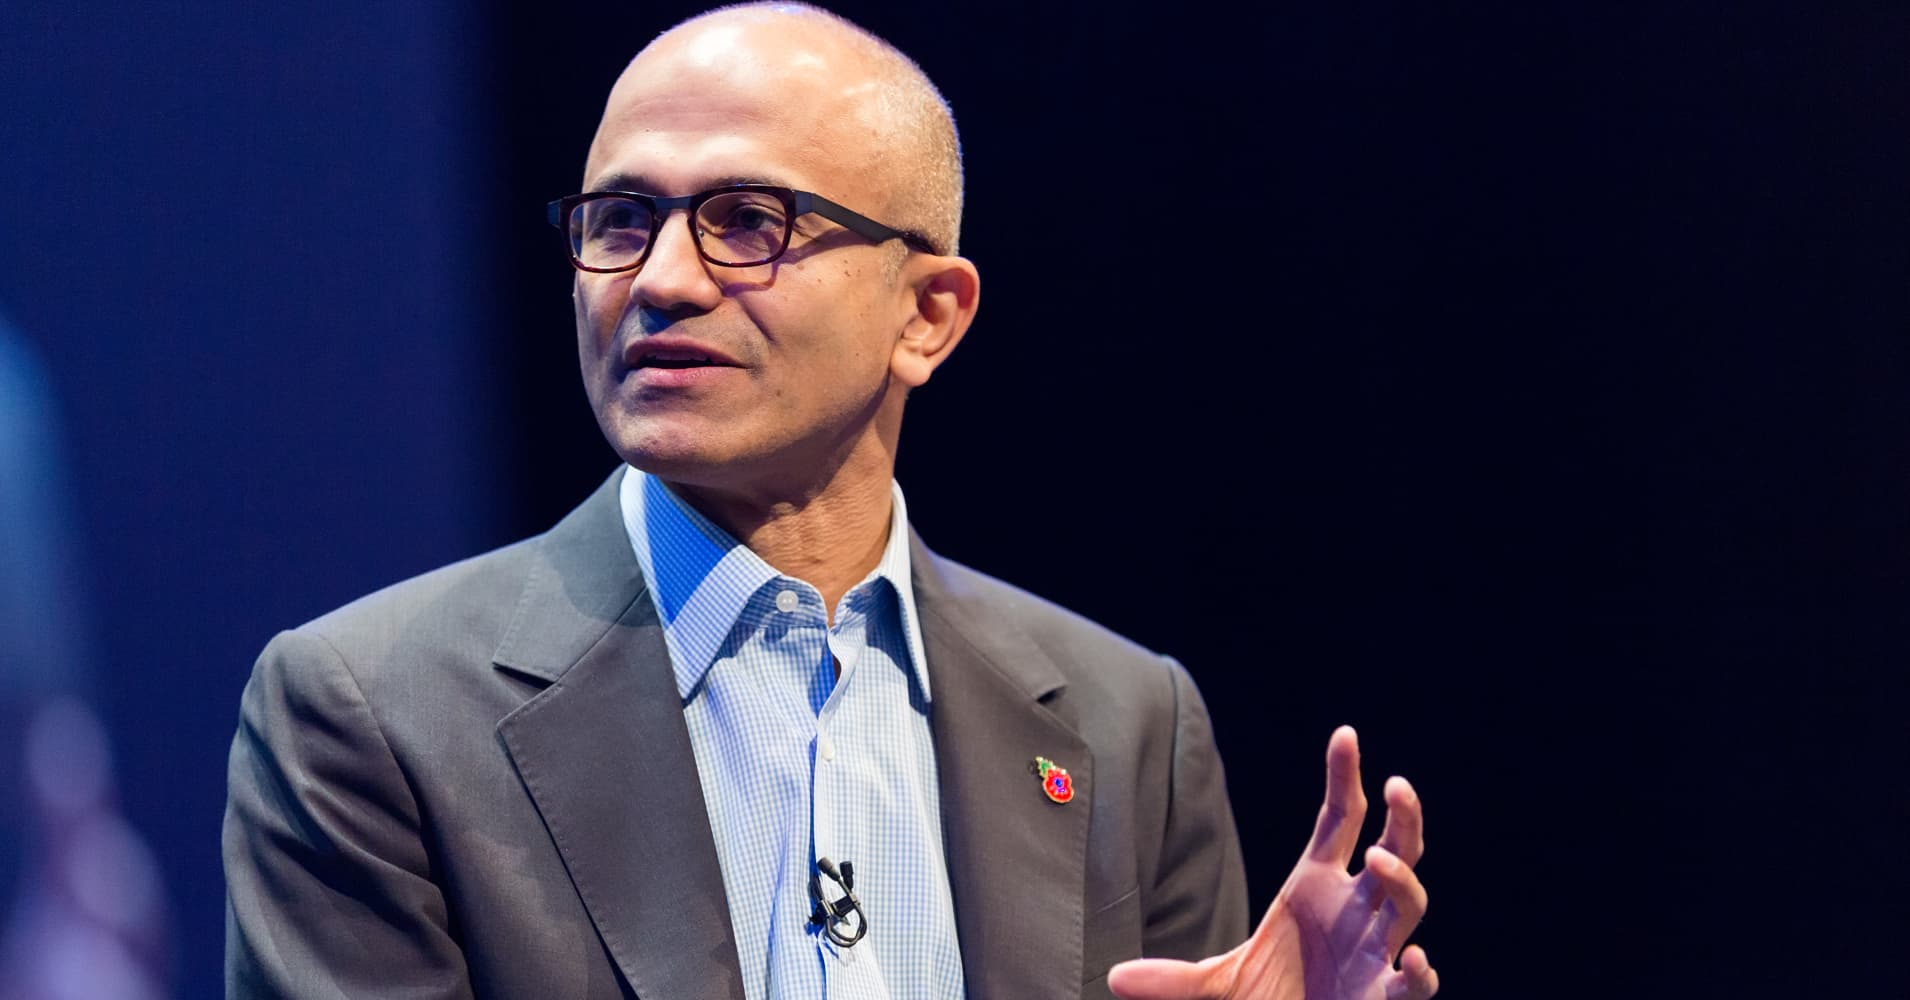 microsoft ceo says he learned this management lesson from sports